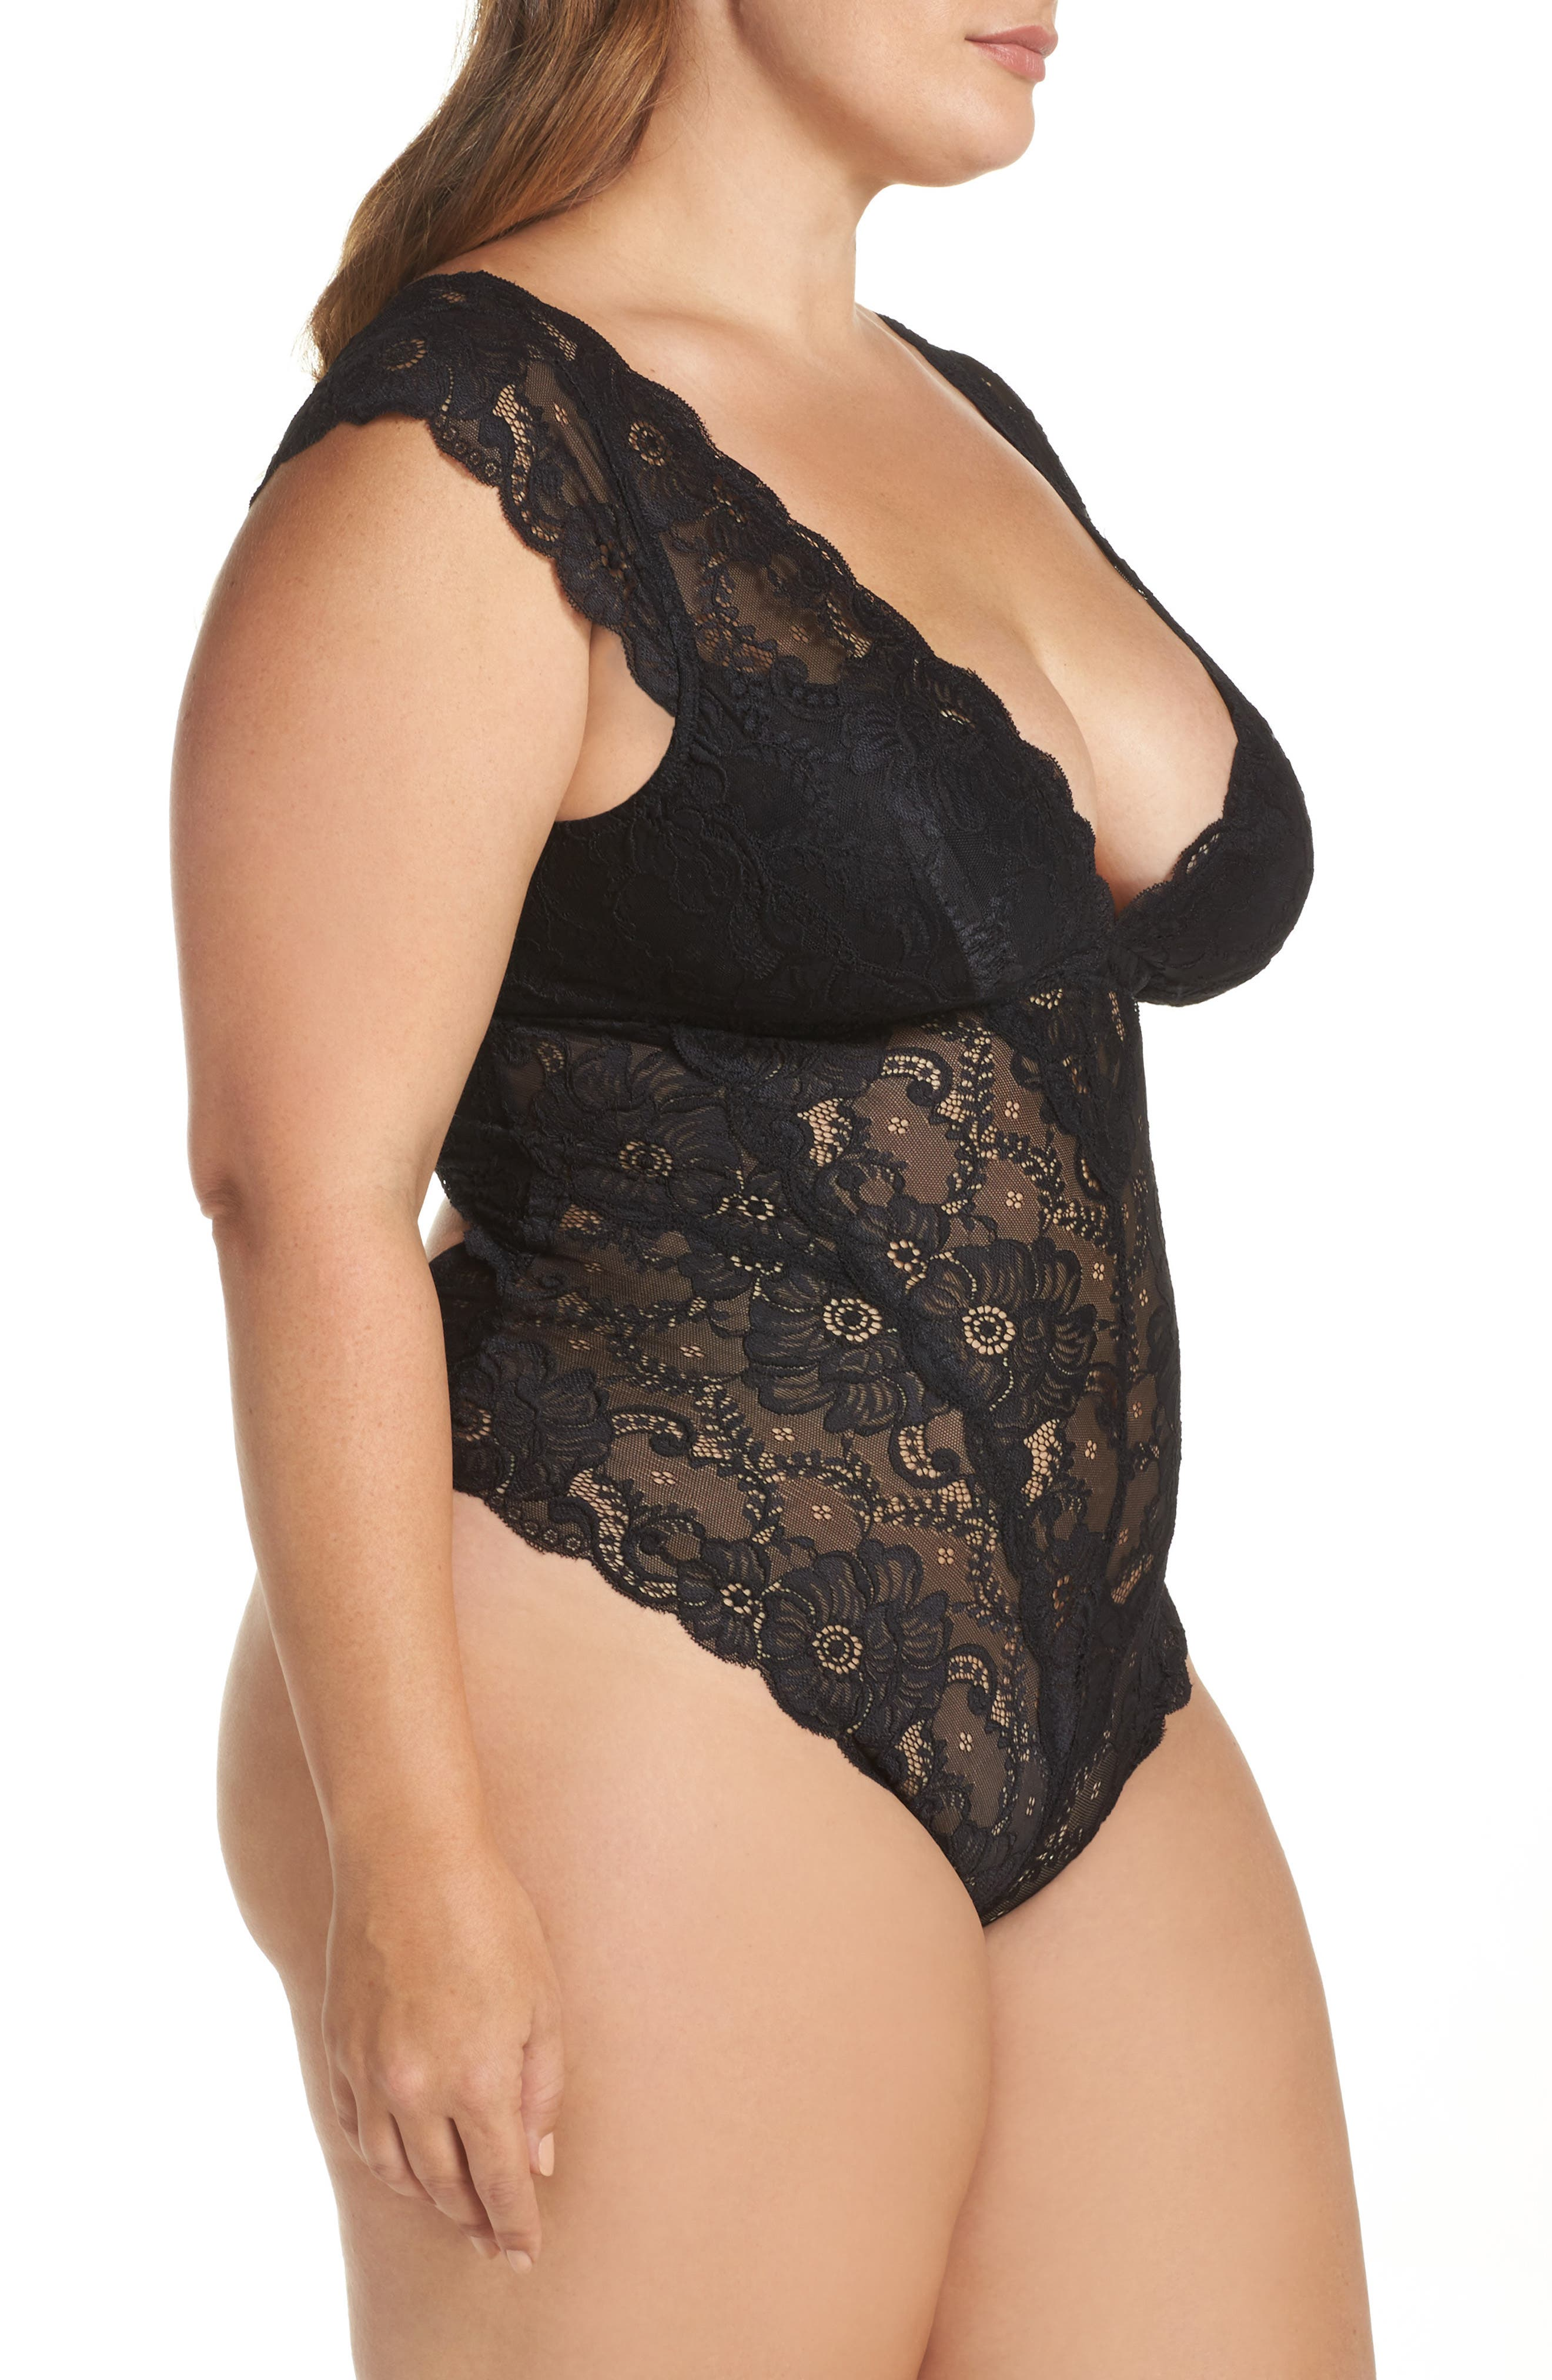 Suzette Lace Teddy,                             Alternate thumbnail 3, color,                             Black